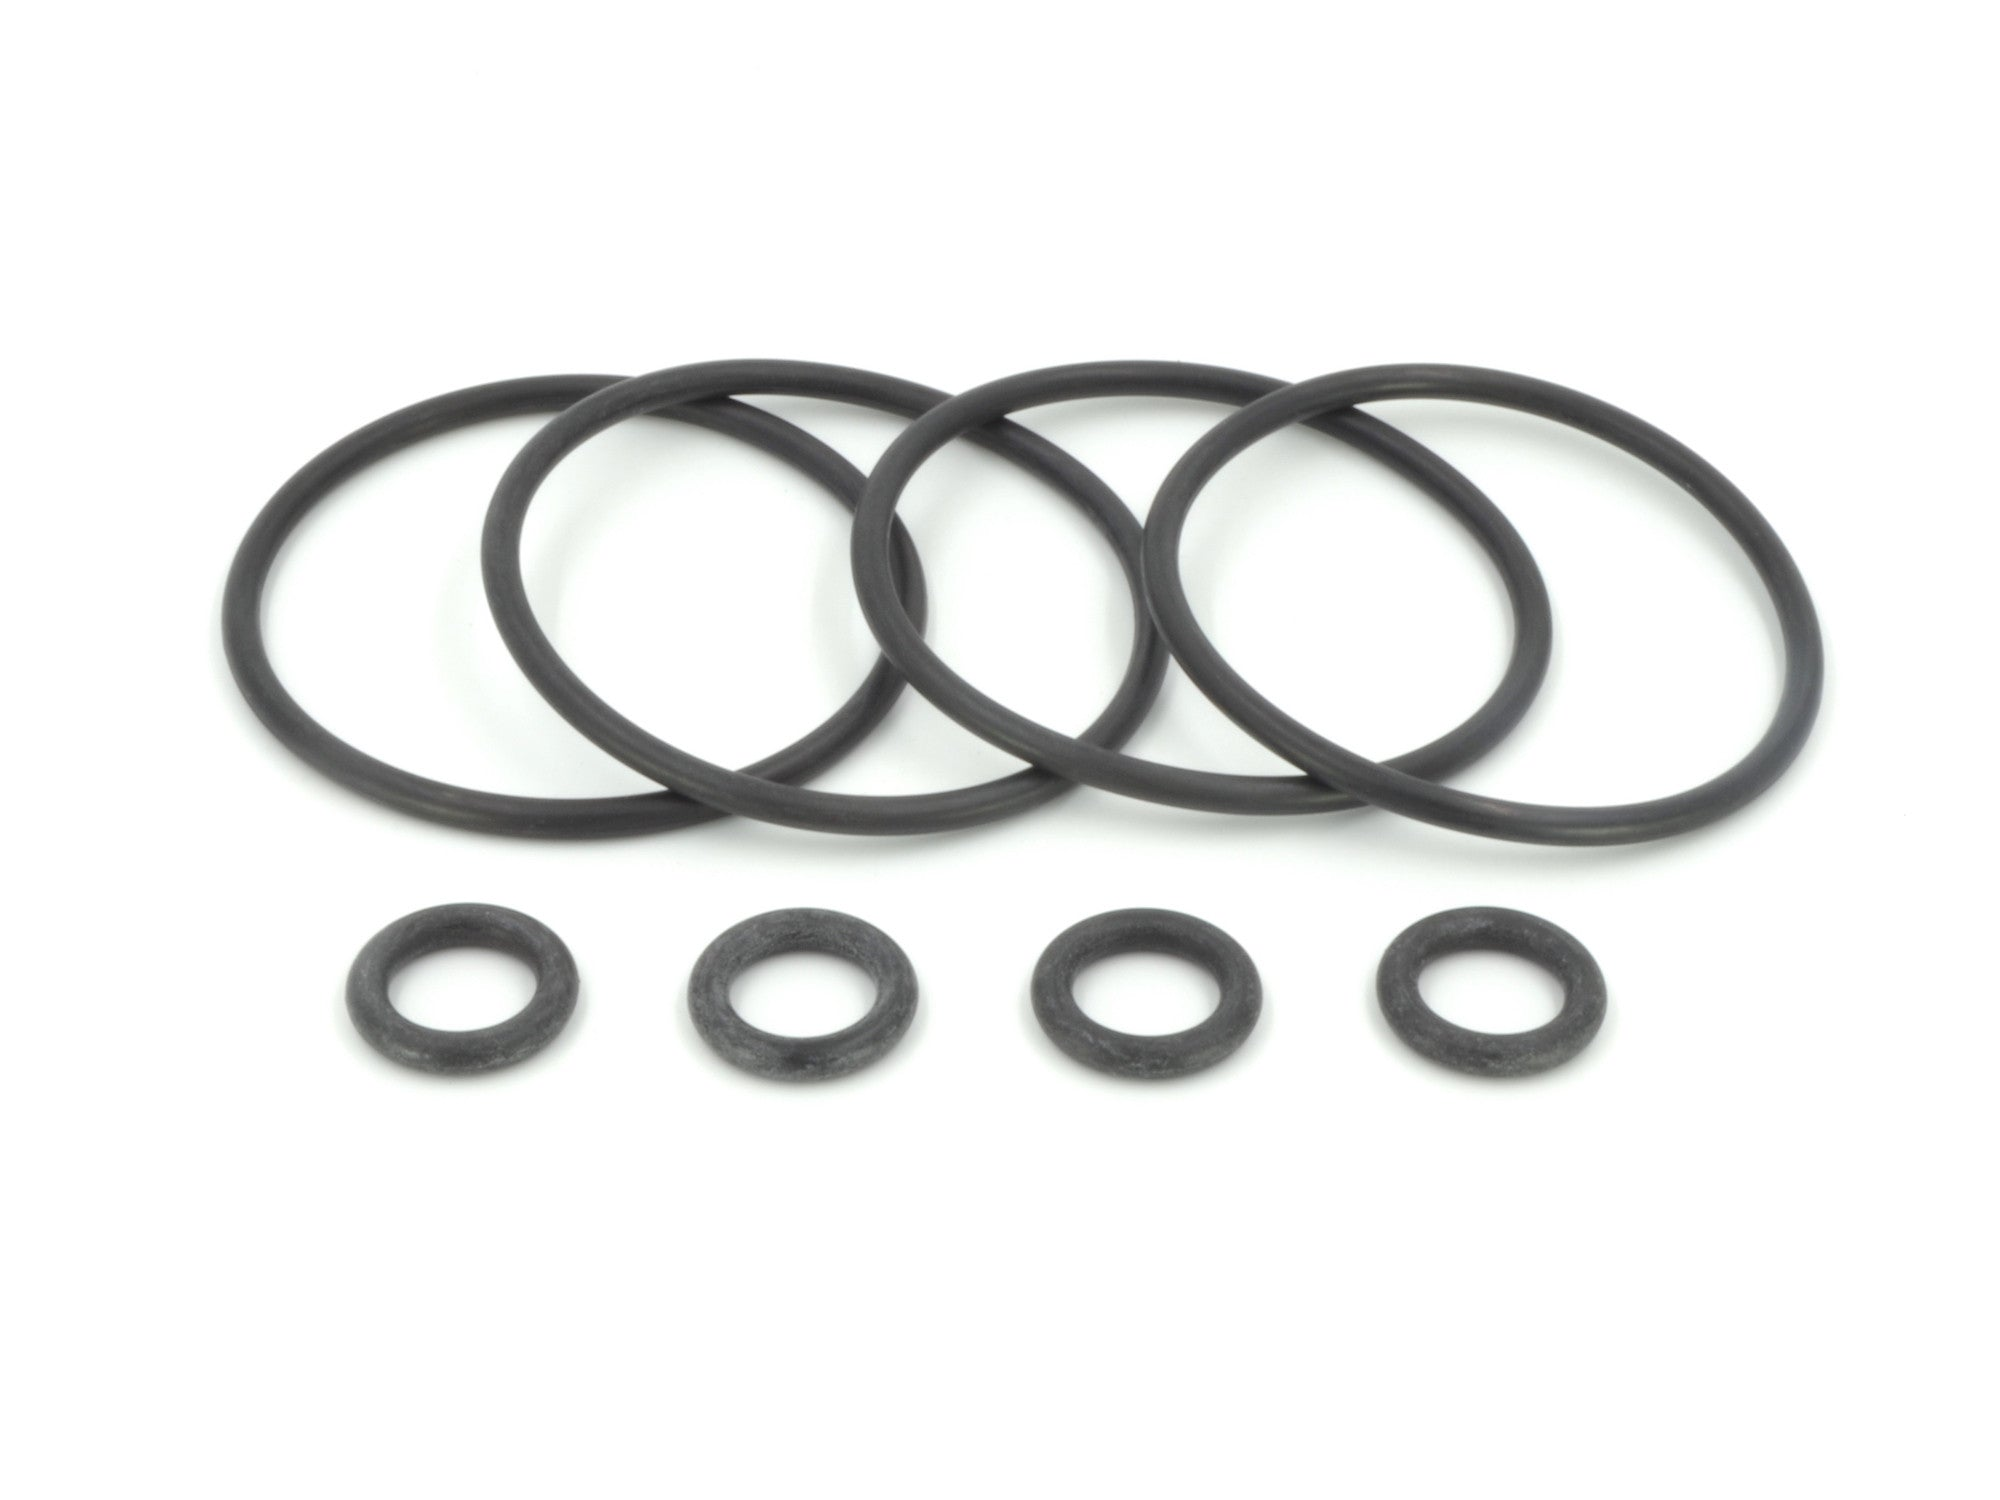 Spare o-ring kit for OpenROV 2.7 and 2.8 waterproofing